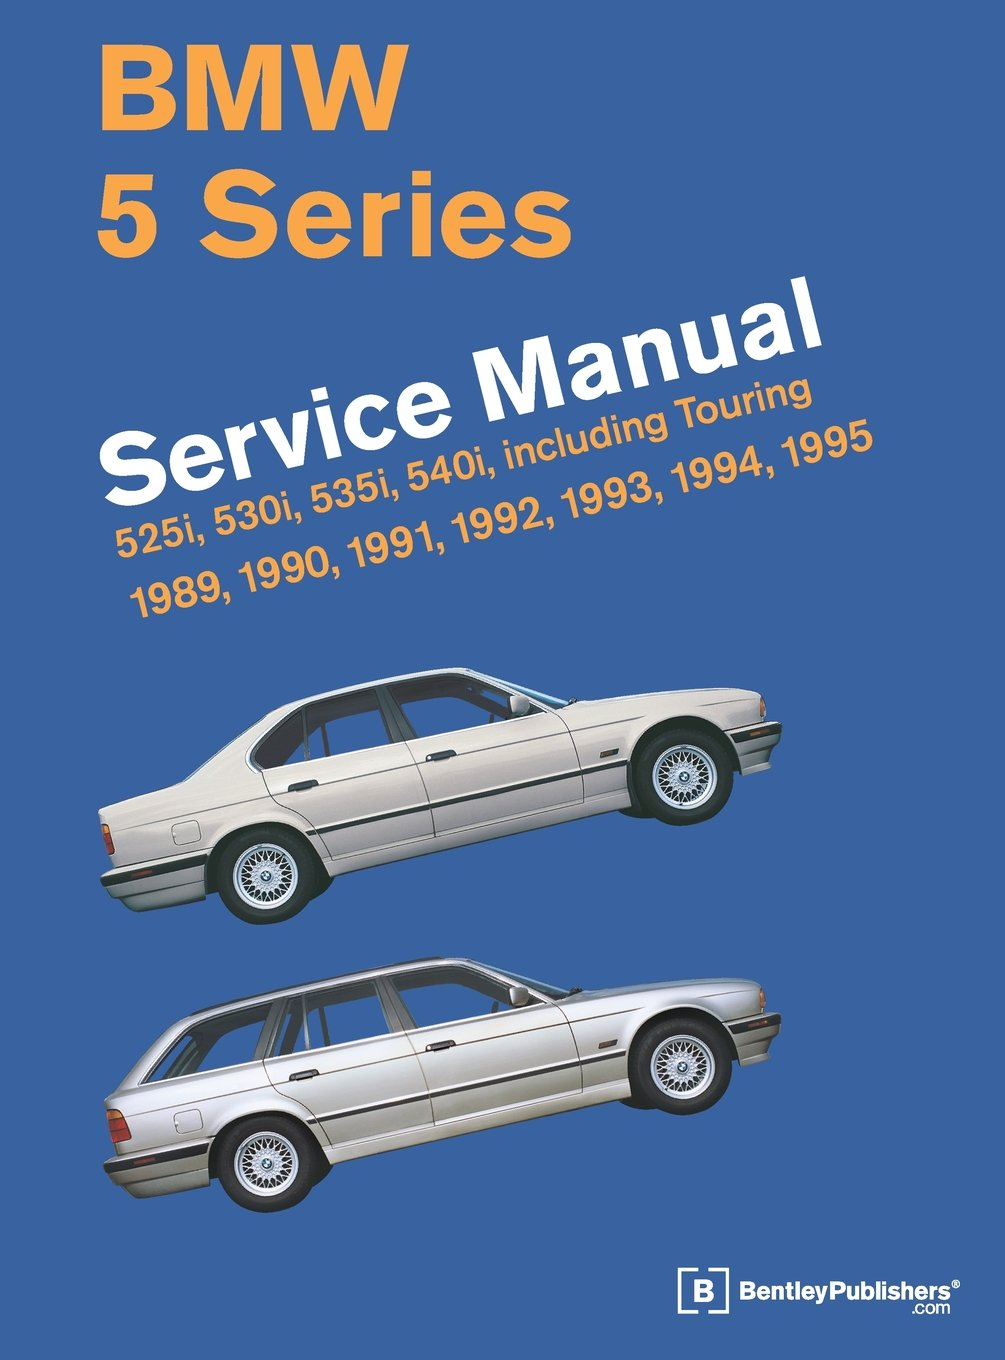 [DIAGRAM_38DE]  BMW 5 Series (E34) Service Manual: 1989, 1990, 1991, 1992, 1993, 1994,  1995: Bentley Publishers: 9780837616971: Amazon.com: Books | 1991 Bmw 525i Engine Diagram |  | Amazon.com